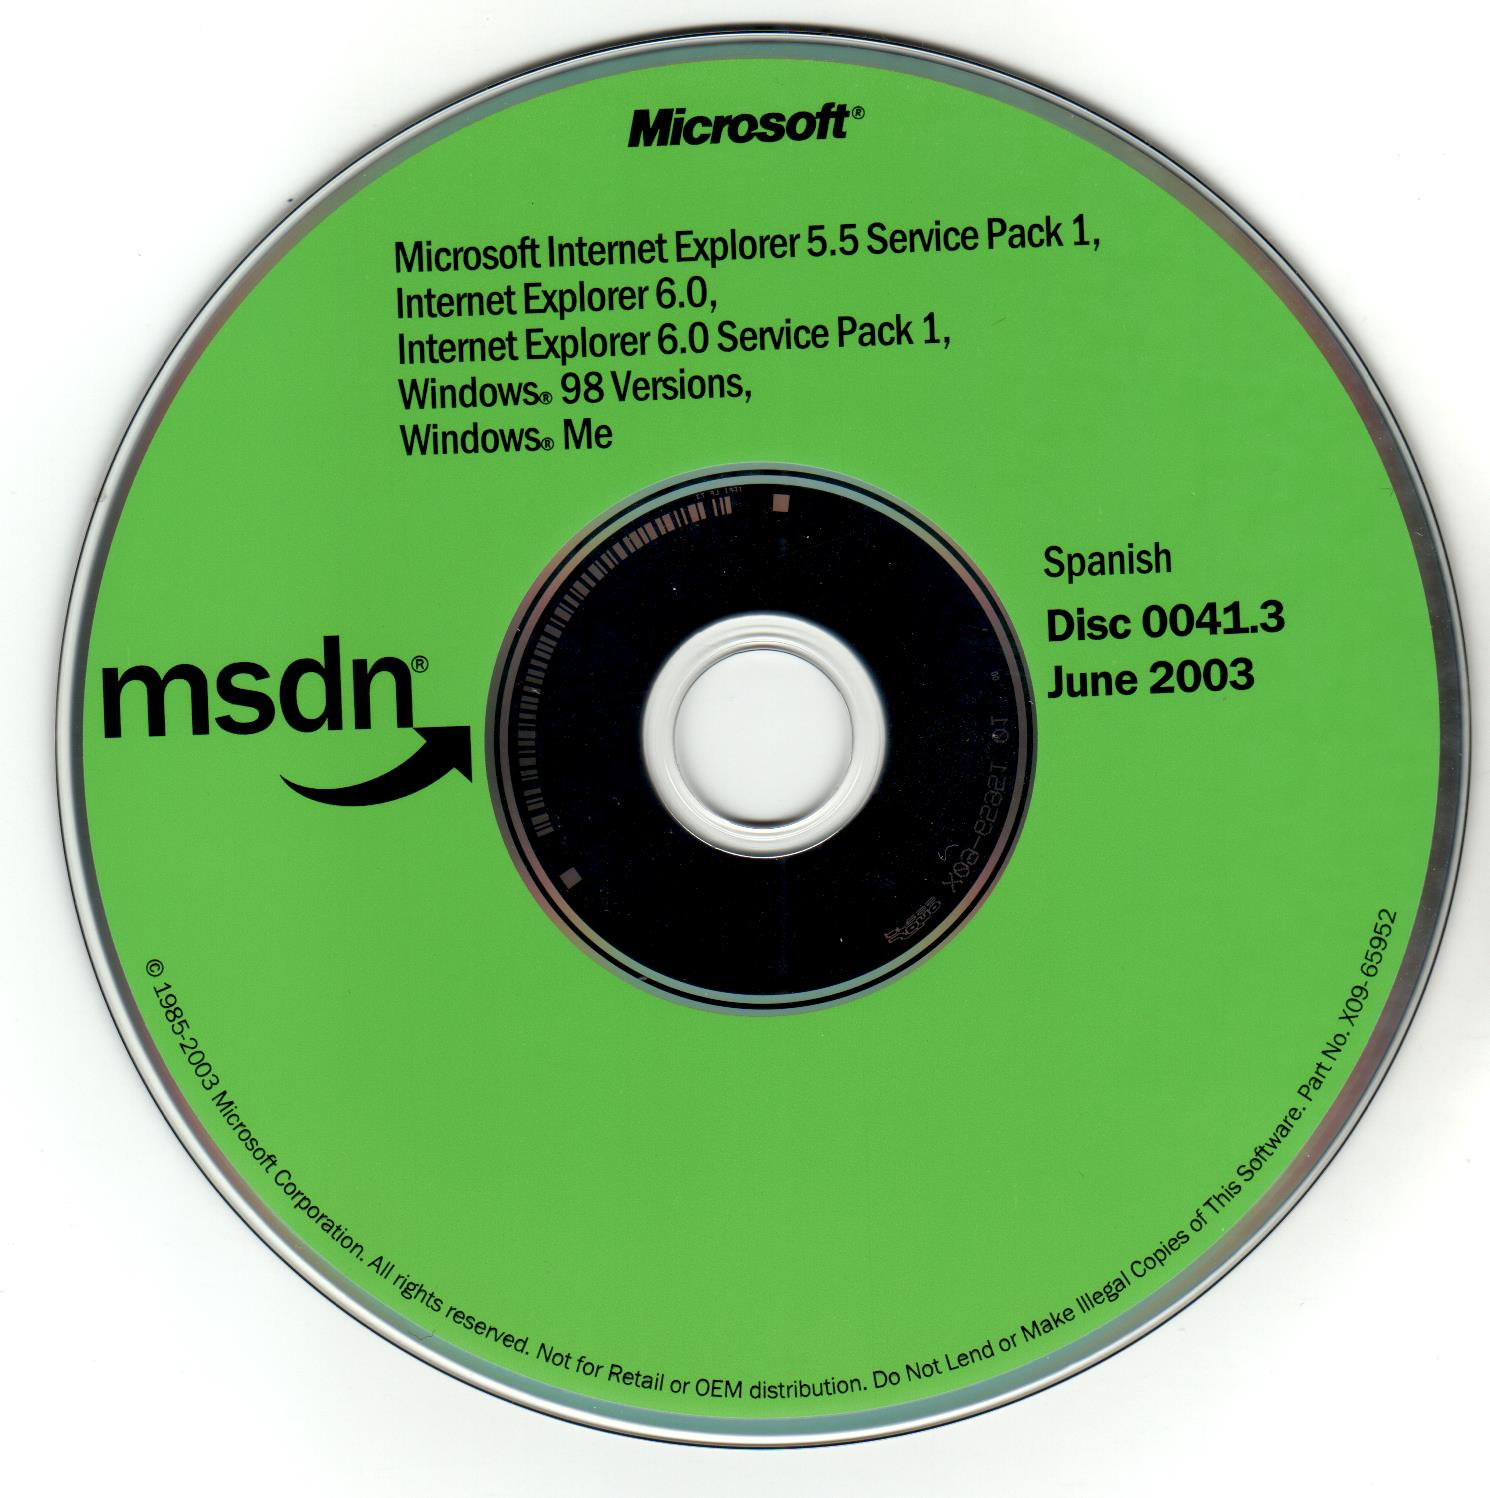 Request] Windows 98 First Edition Full CD {Not Upgrade} in Spanish